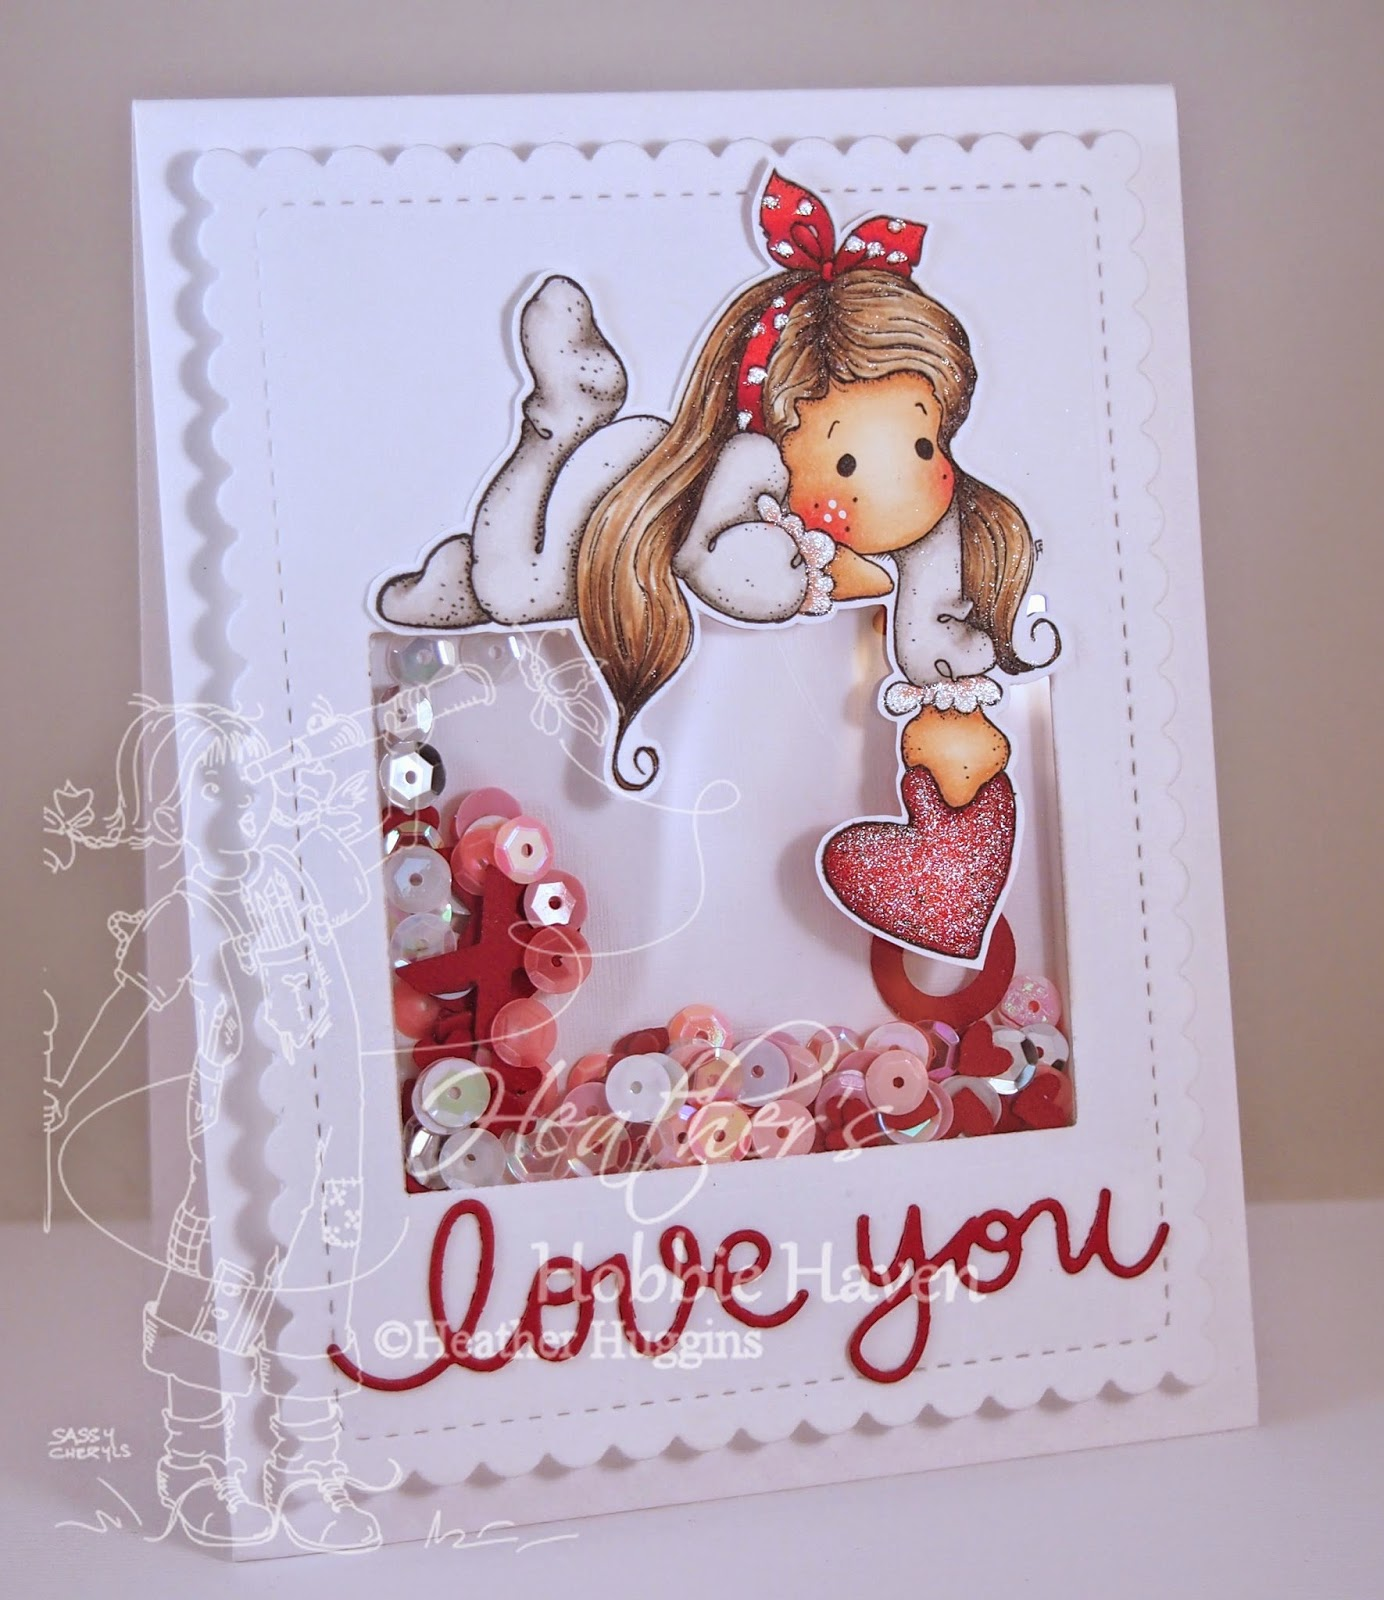 Heather's Hobbie Haven - Tilda with Dotbow Card Kit